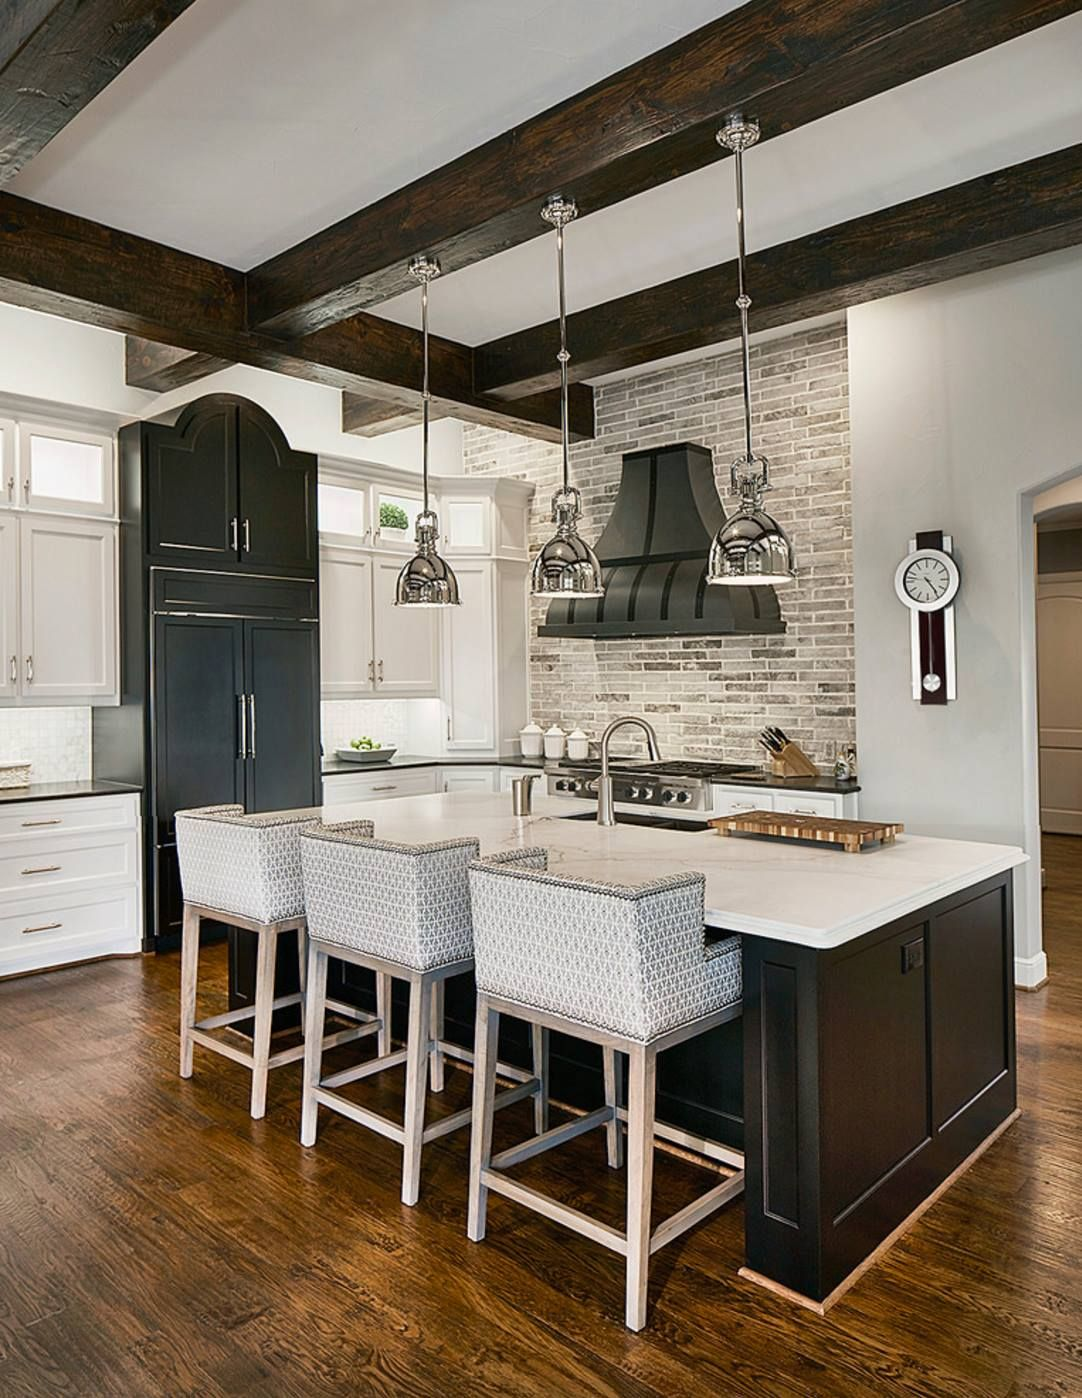 2016 Besting Sherwin Williams Paint Colors Pick A